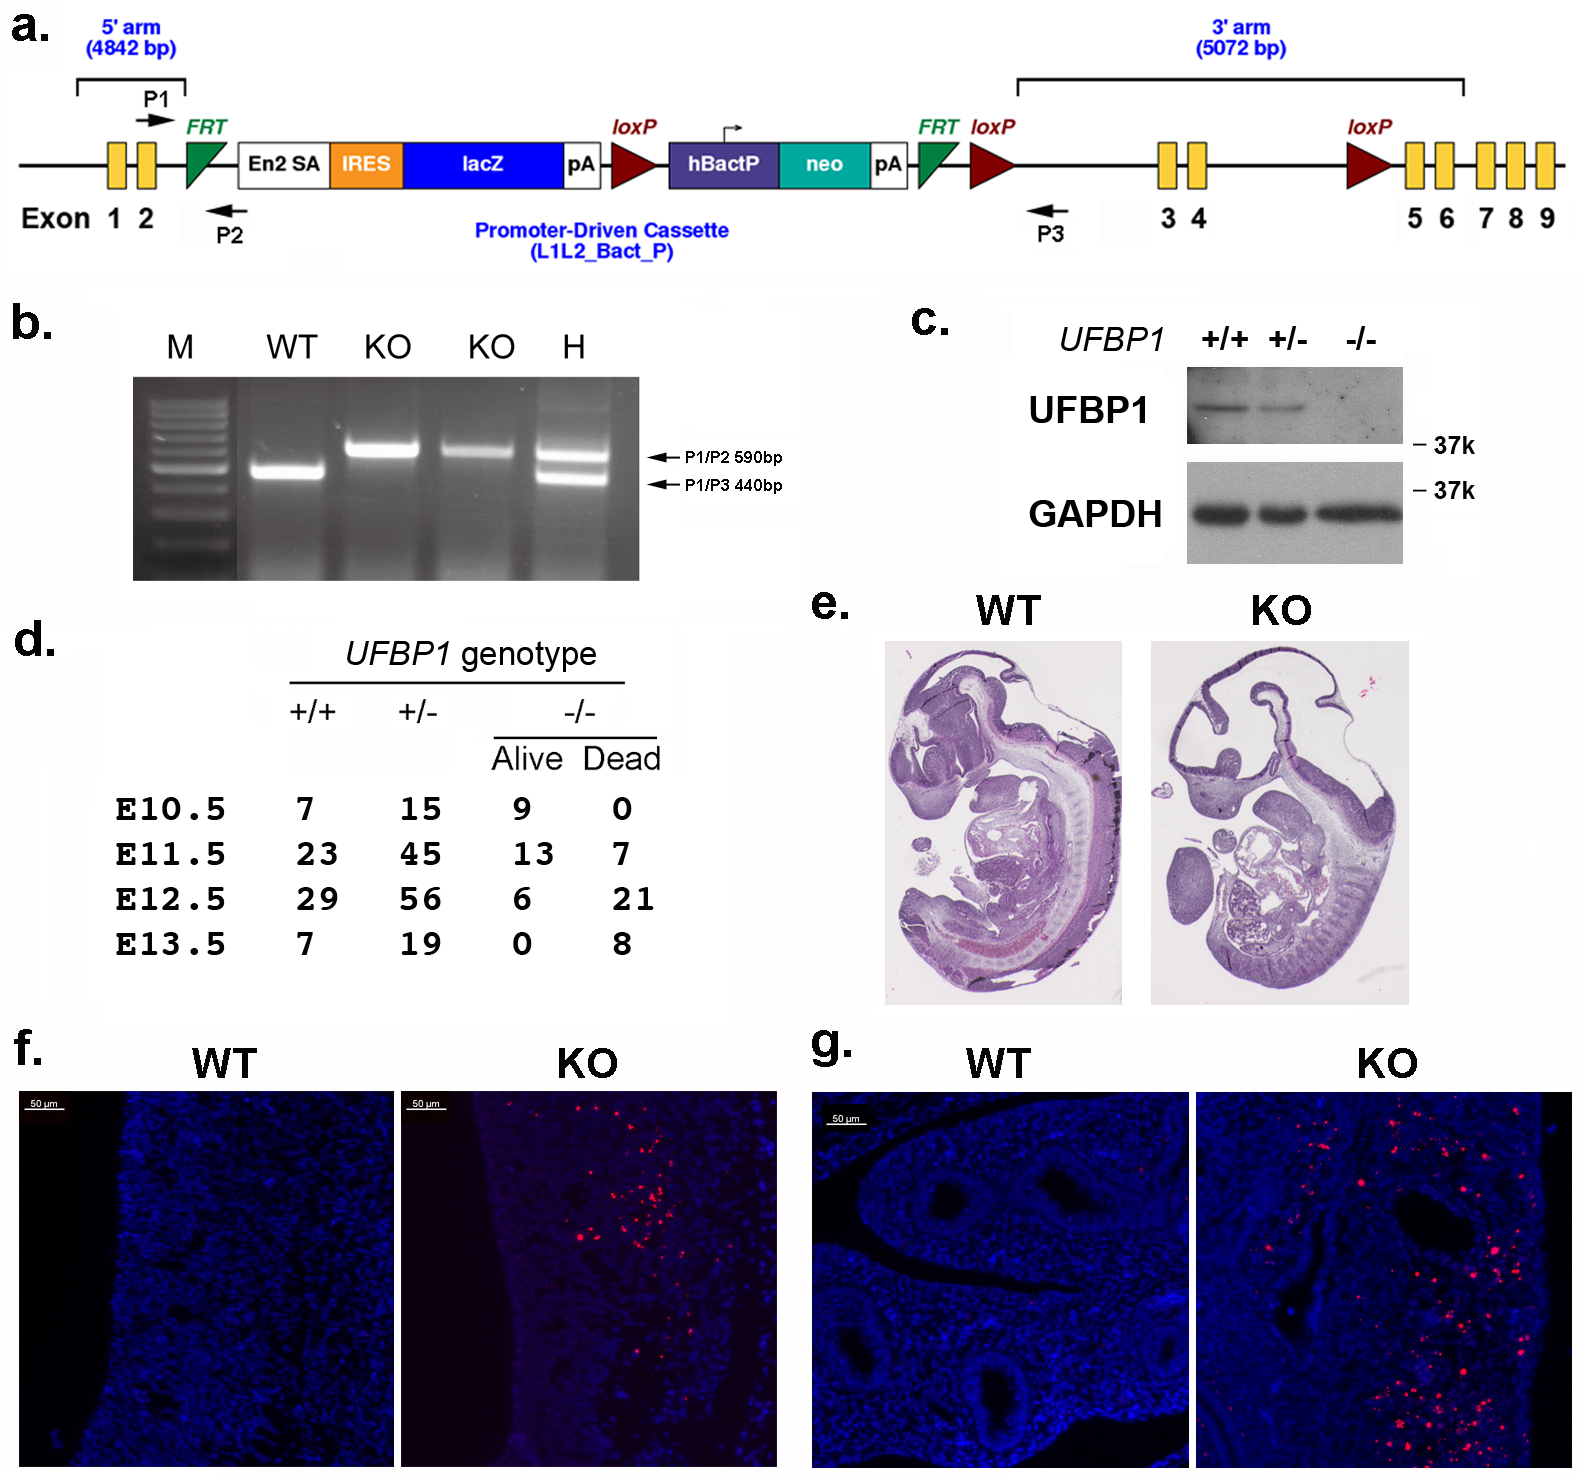 UFBP1 is essential for embryonic development.